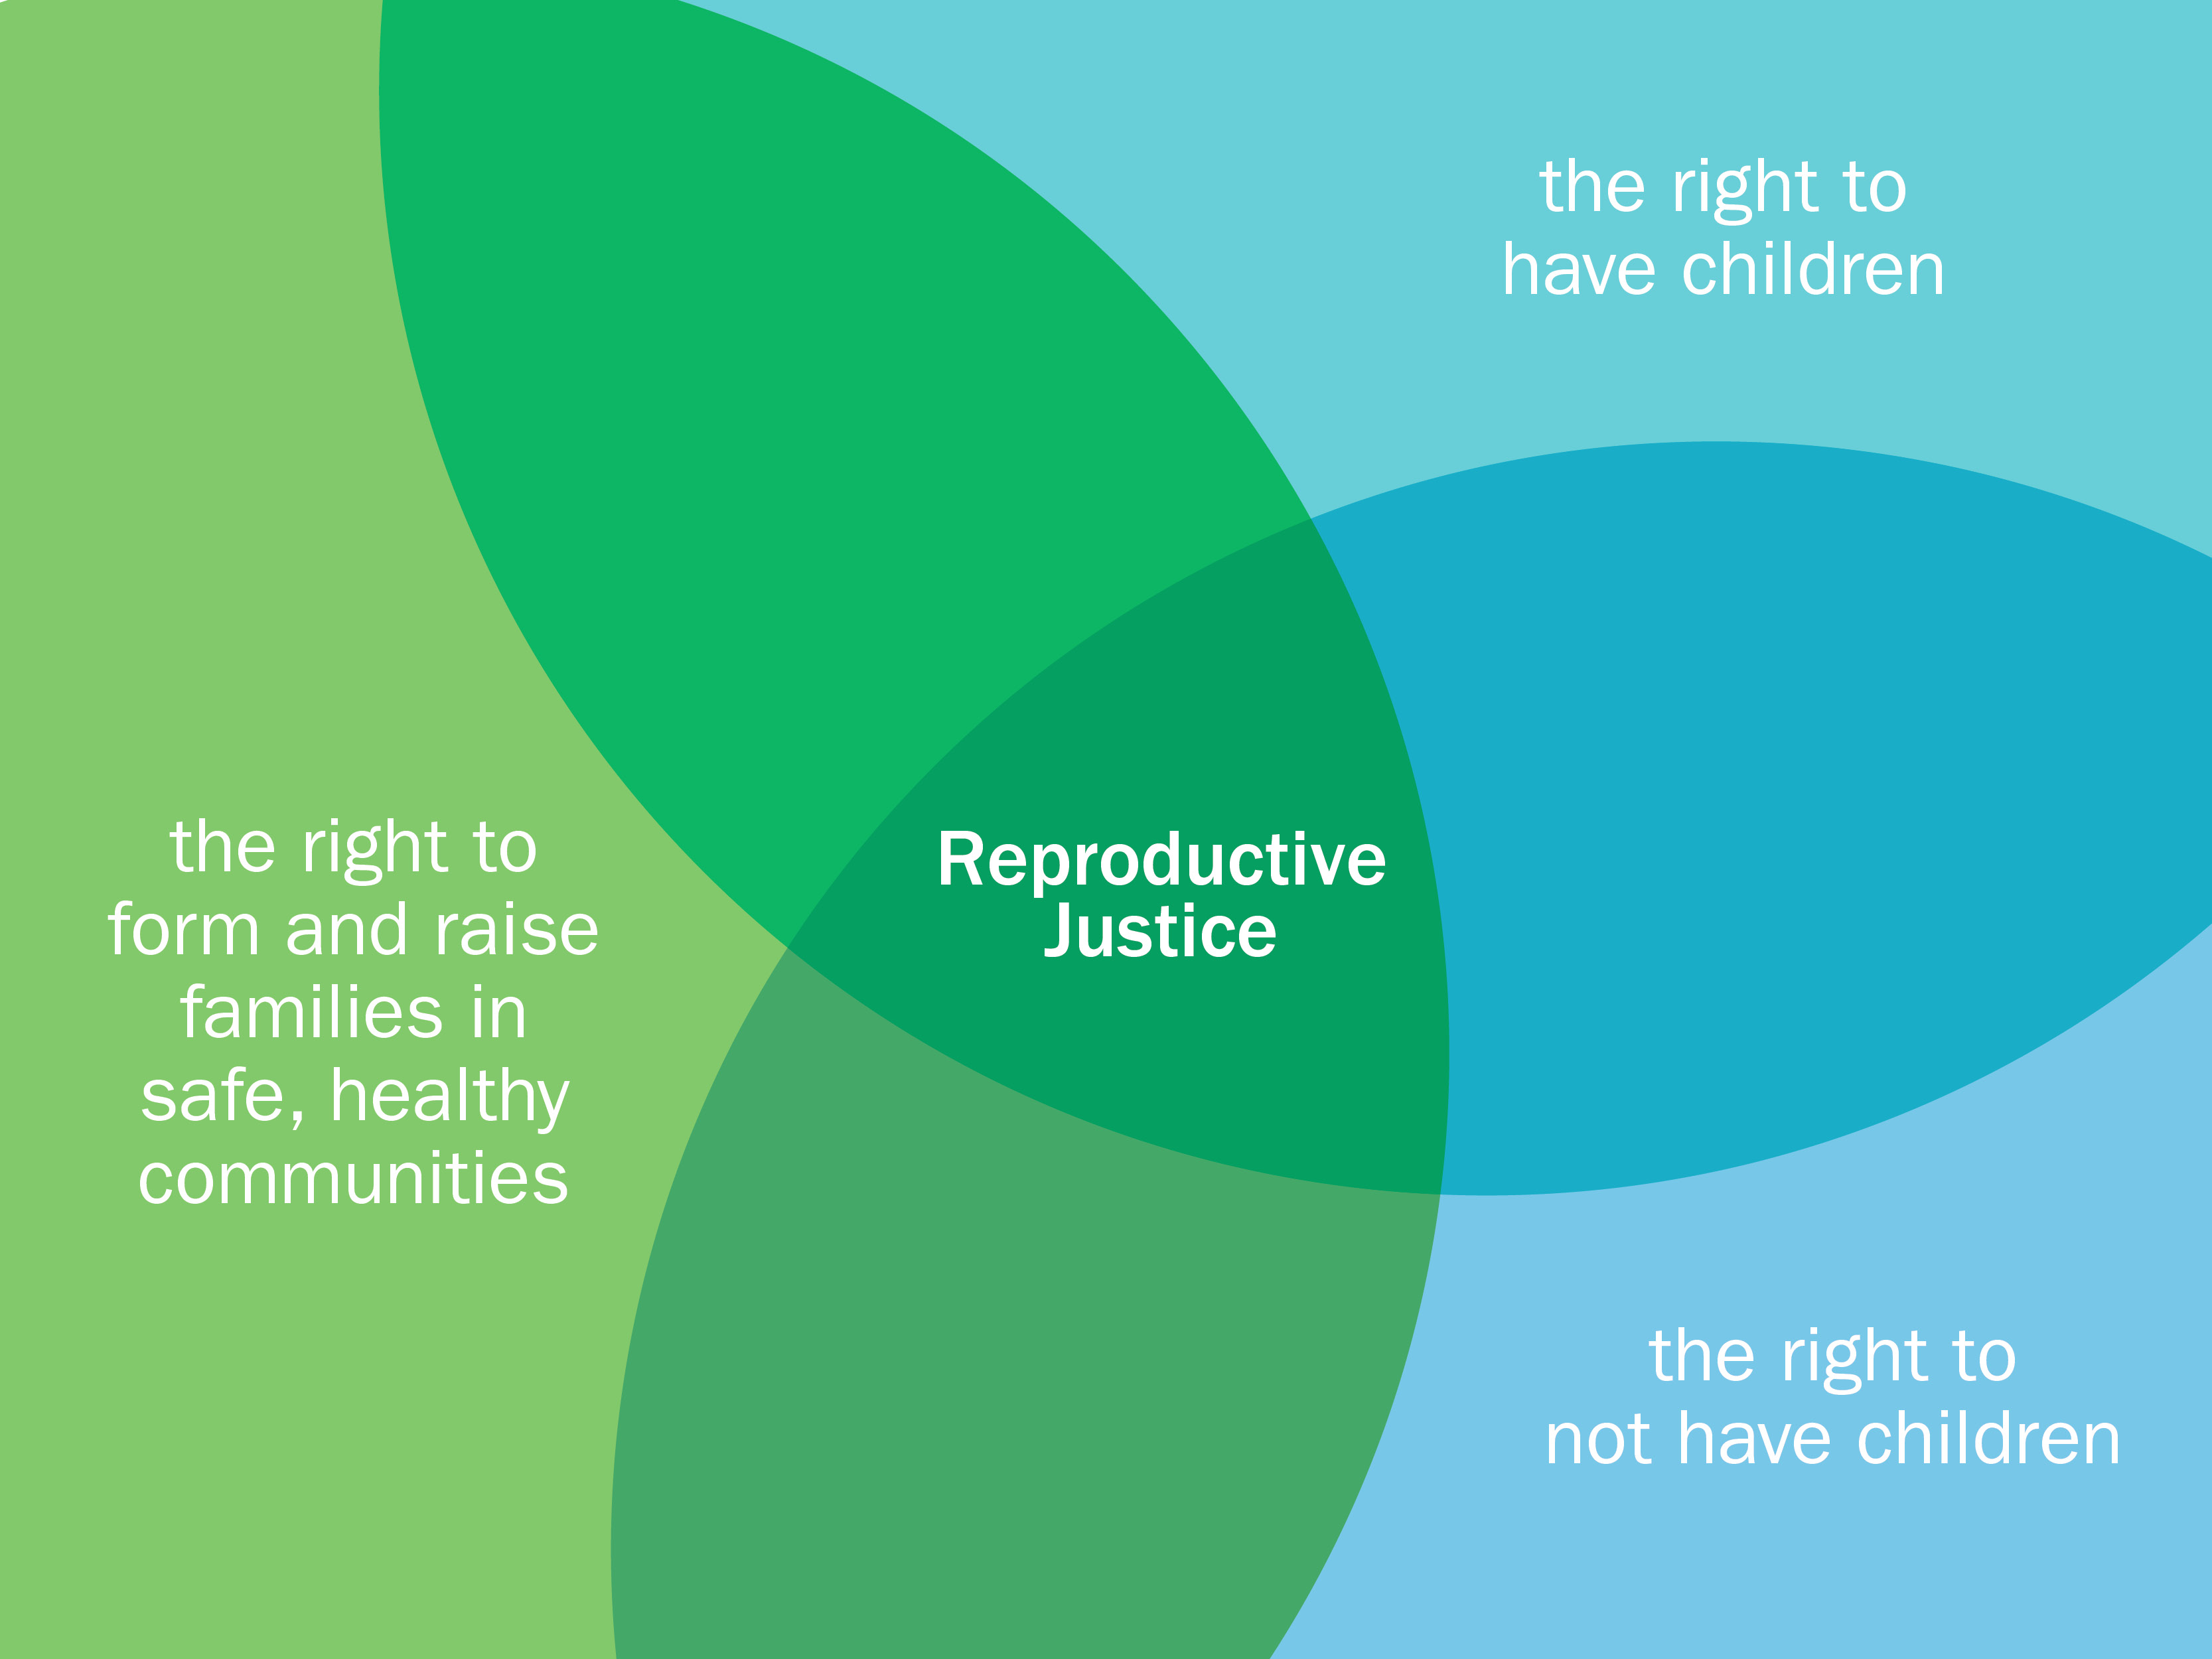 reproductive justice graphic